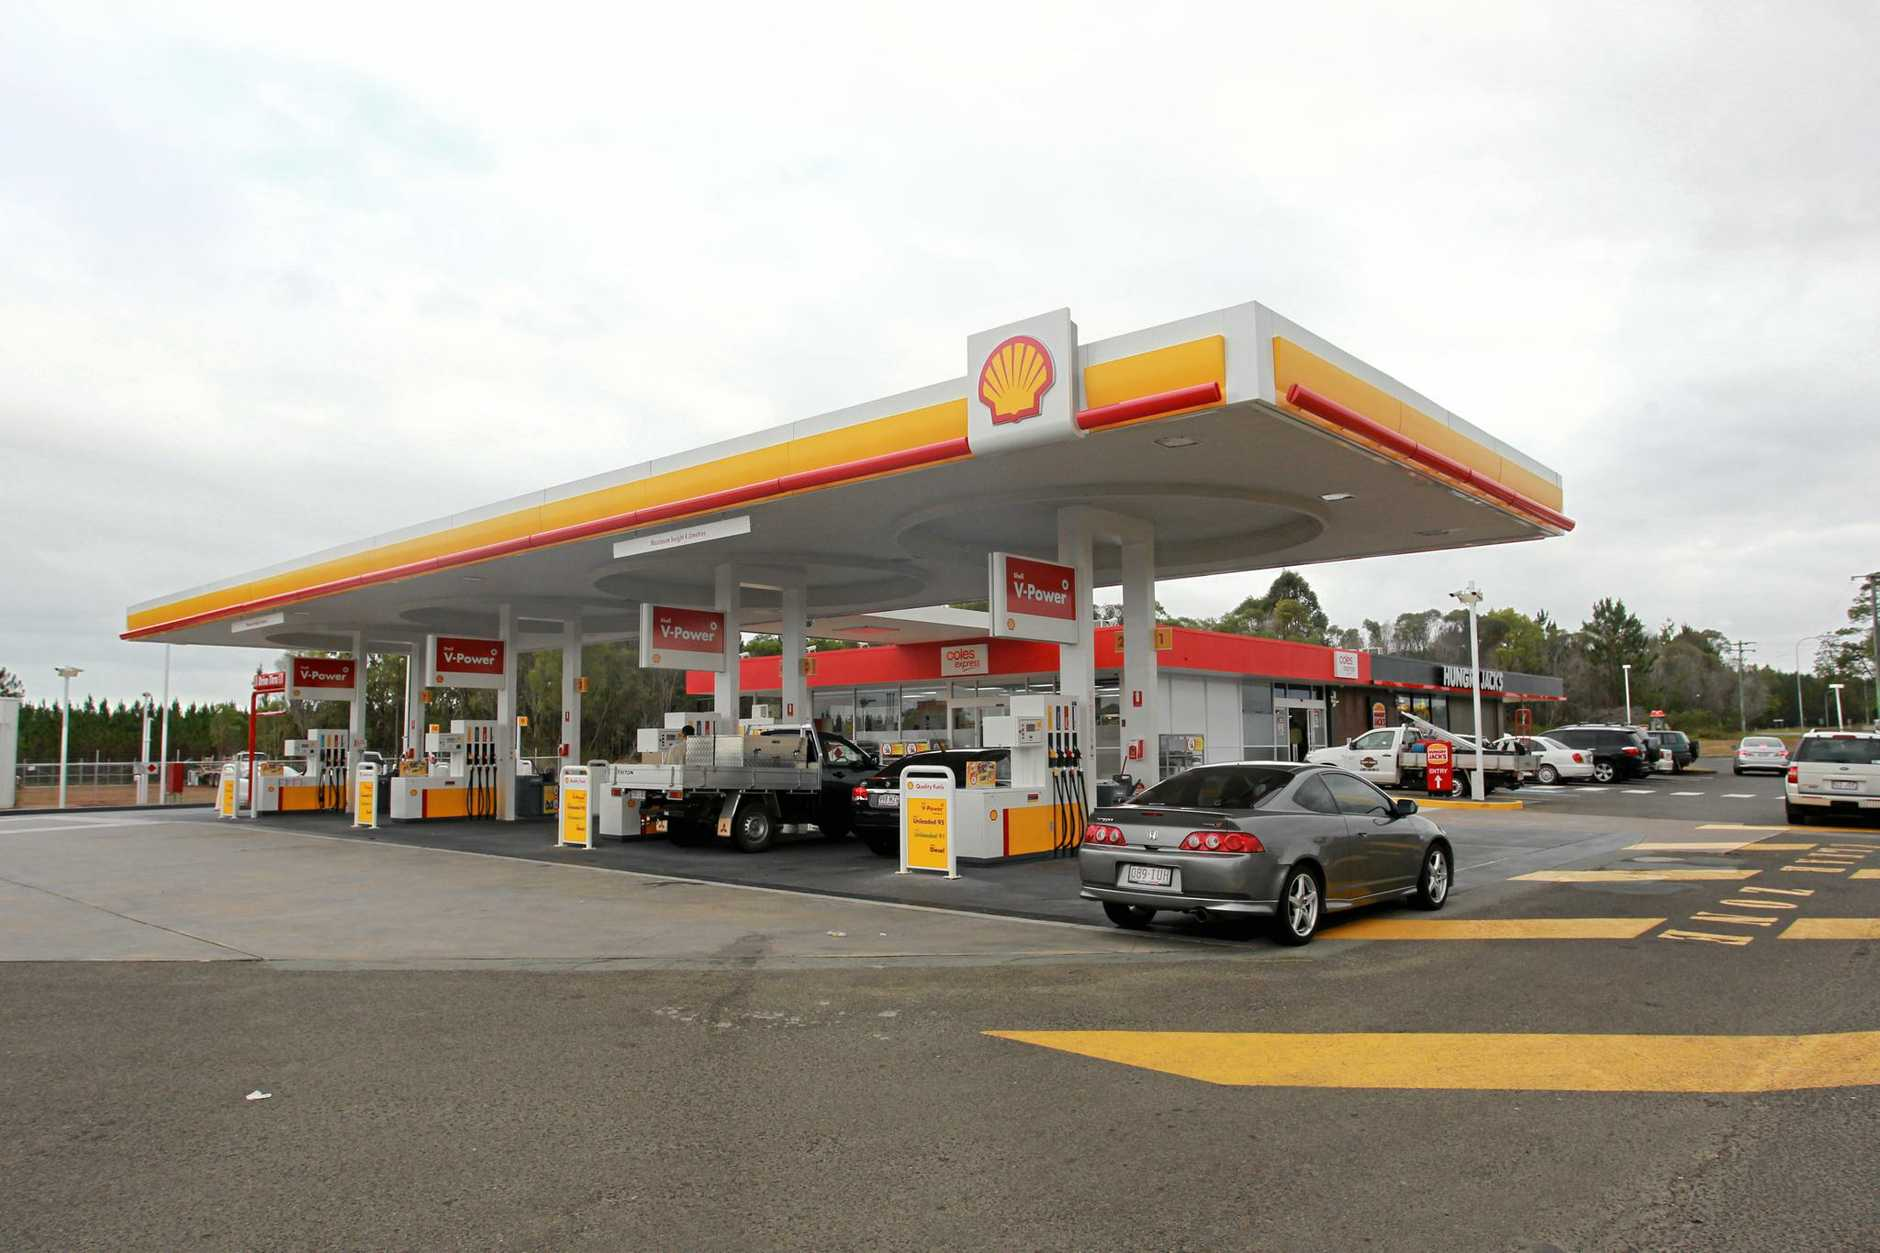 SOON TO COME: A Shell service station on the Bruce Highway with a fast food retailer attached.